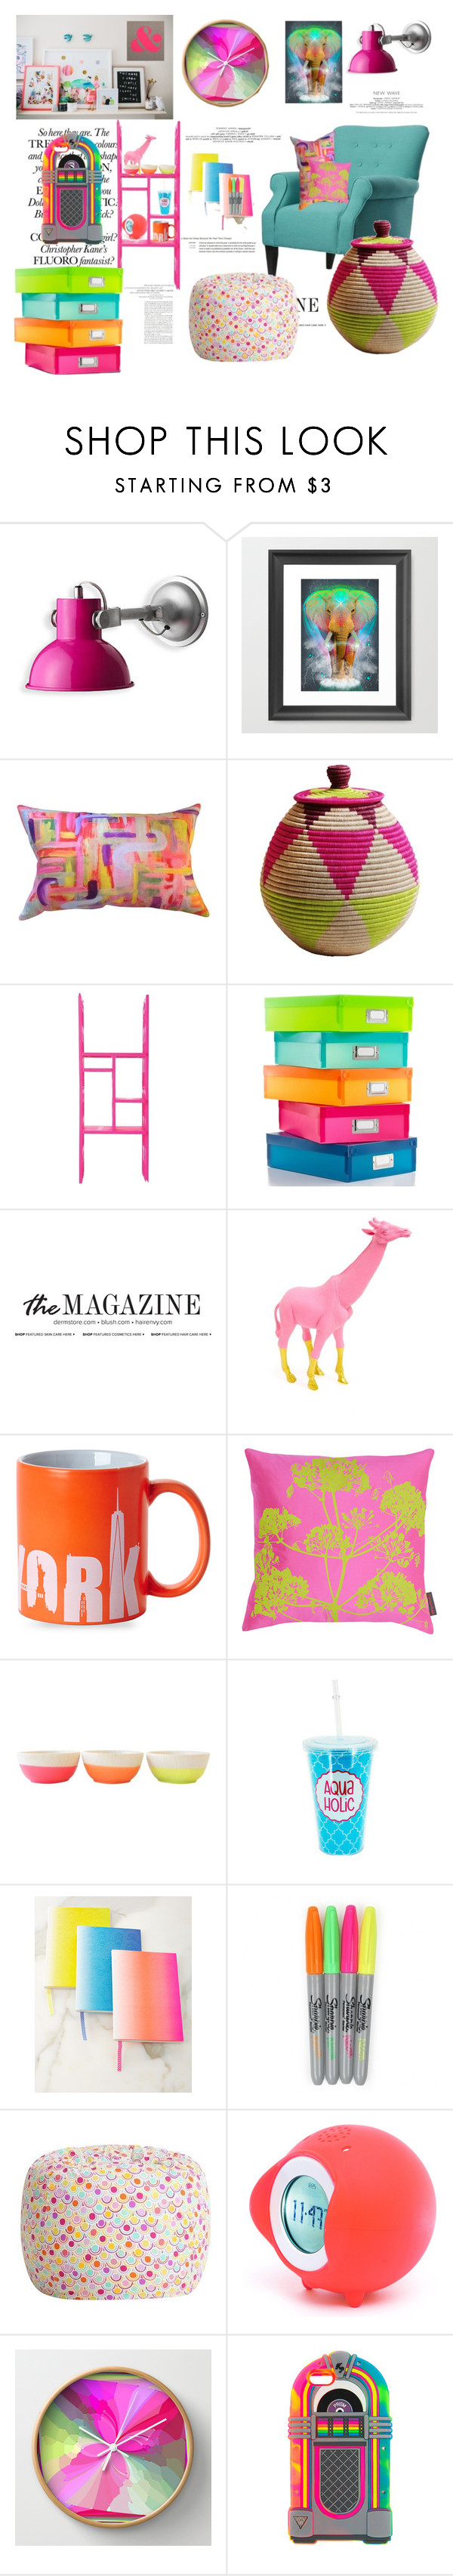 """Neon Elephant"" by pinkymonster ❤ liked on Polyvore featuring interior, interiors, interior design, home, home decor, interior decorating, Indego Africa, Whitmor, Talking Tables and Clarissa Hulse"